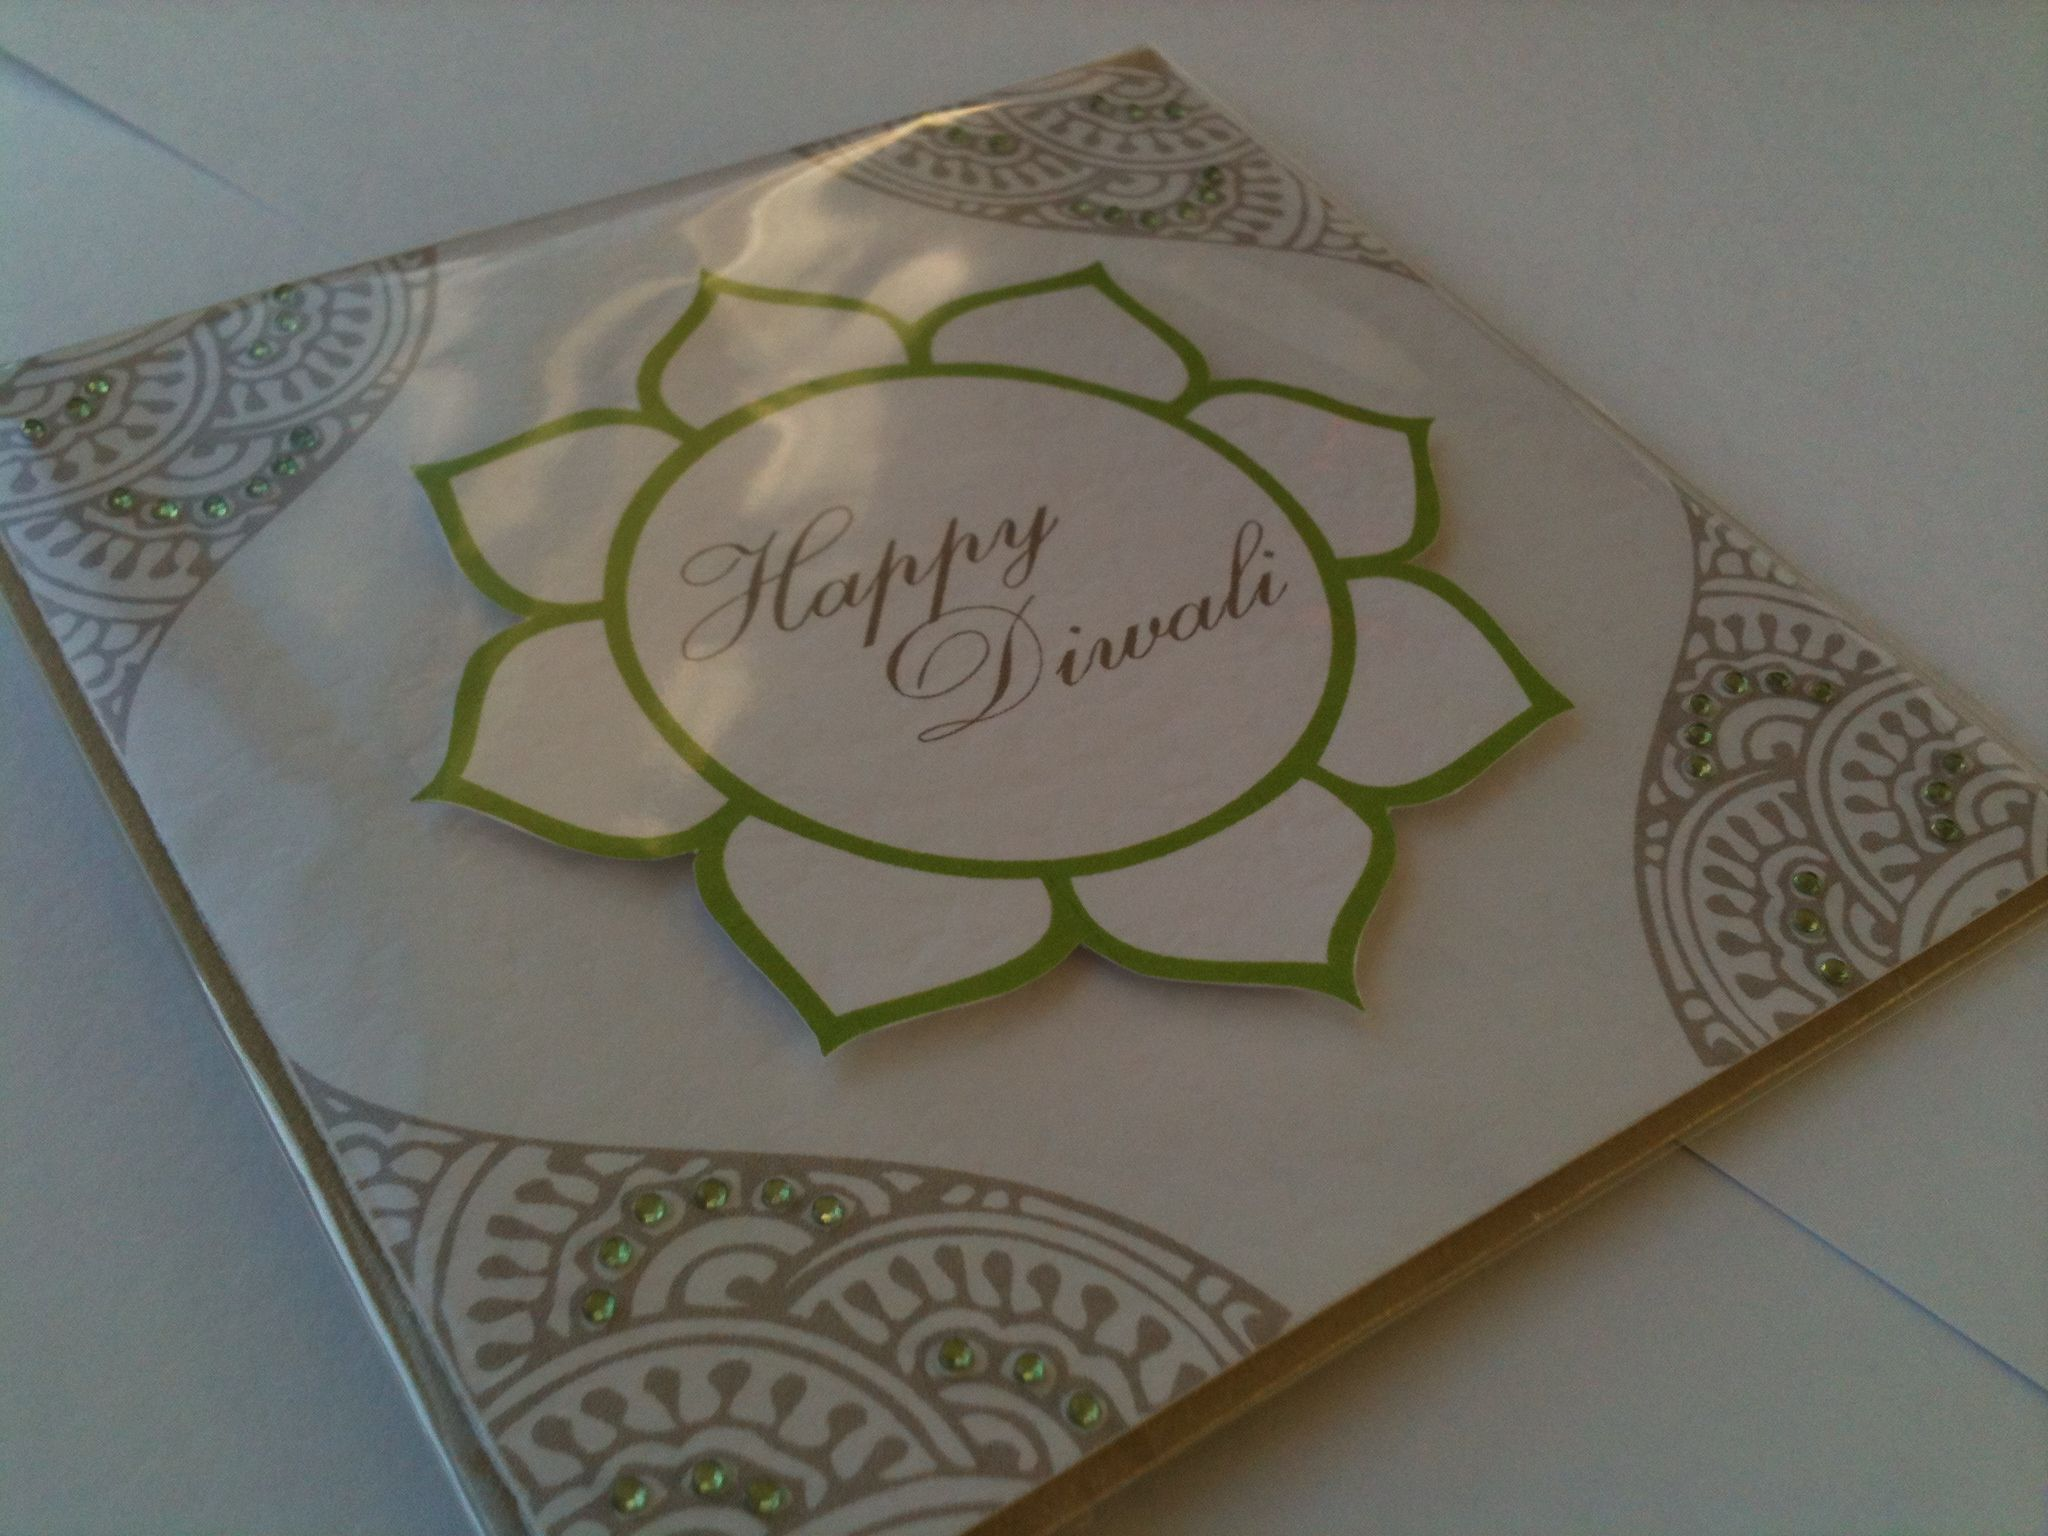 Handmade diwali cards with stone work detailing indian cards handmade diwali cards with stone work detailing kristyandbryce Choice Image